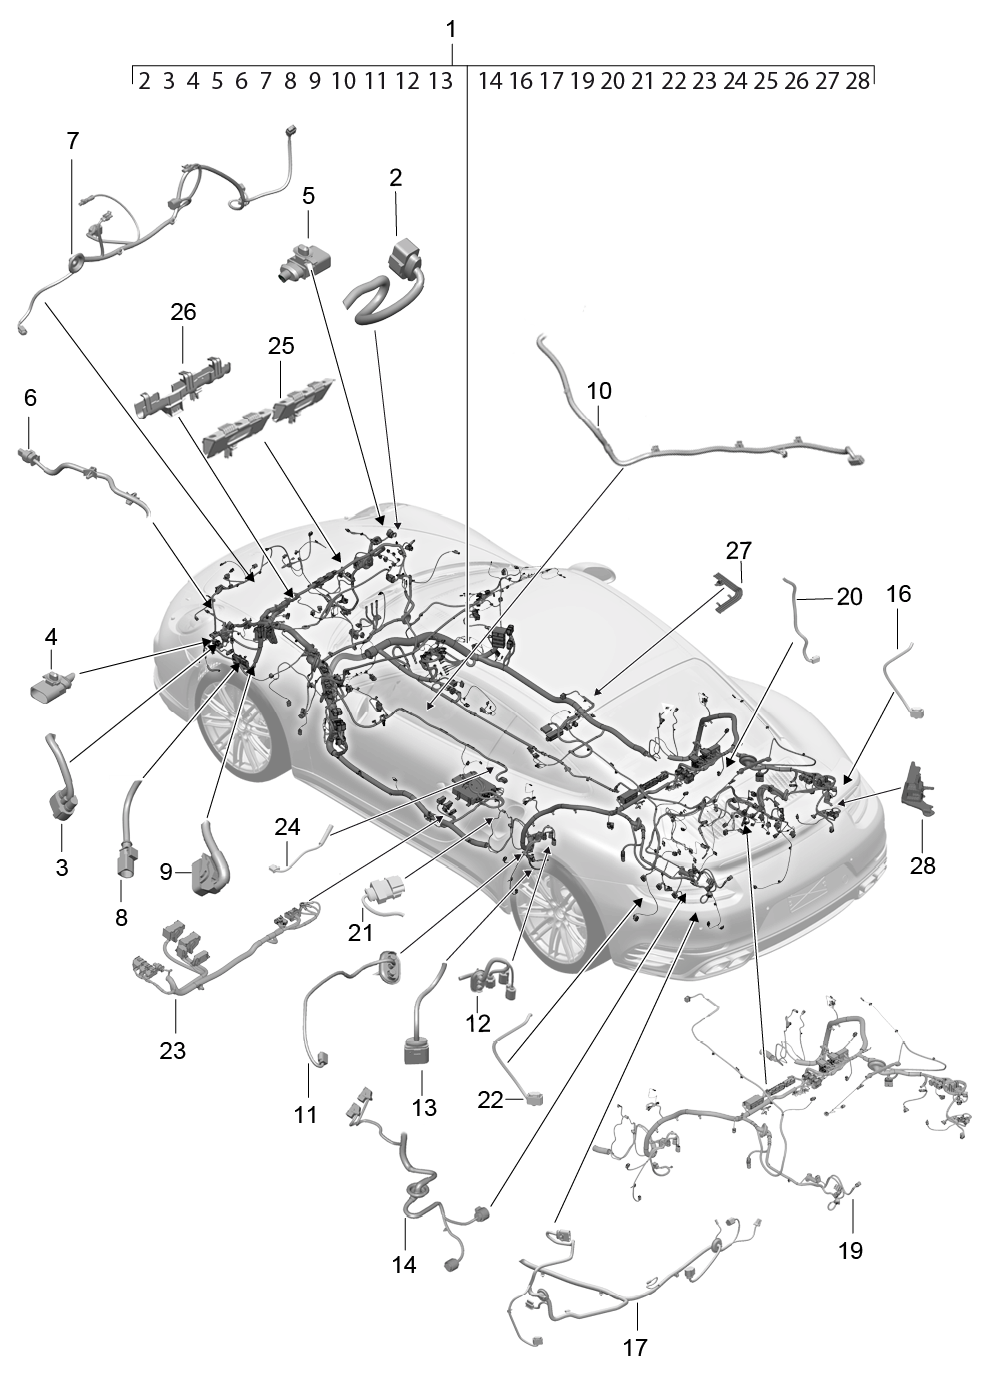 Porsche 991 Turbo 2014 2017 Sub Part Passenger Compartment 1991 911 Wiring Diagrams Diy Enthusiasts Pet